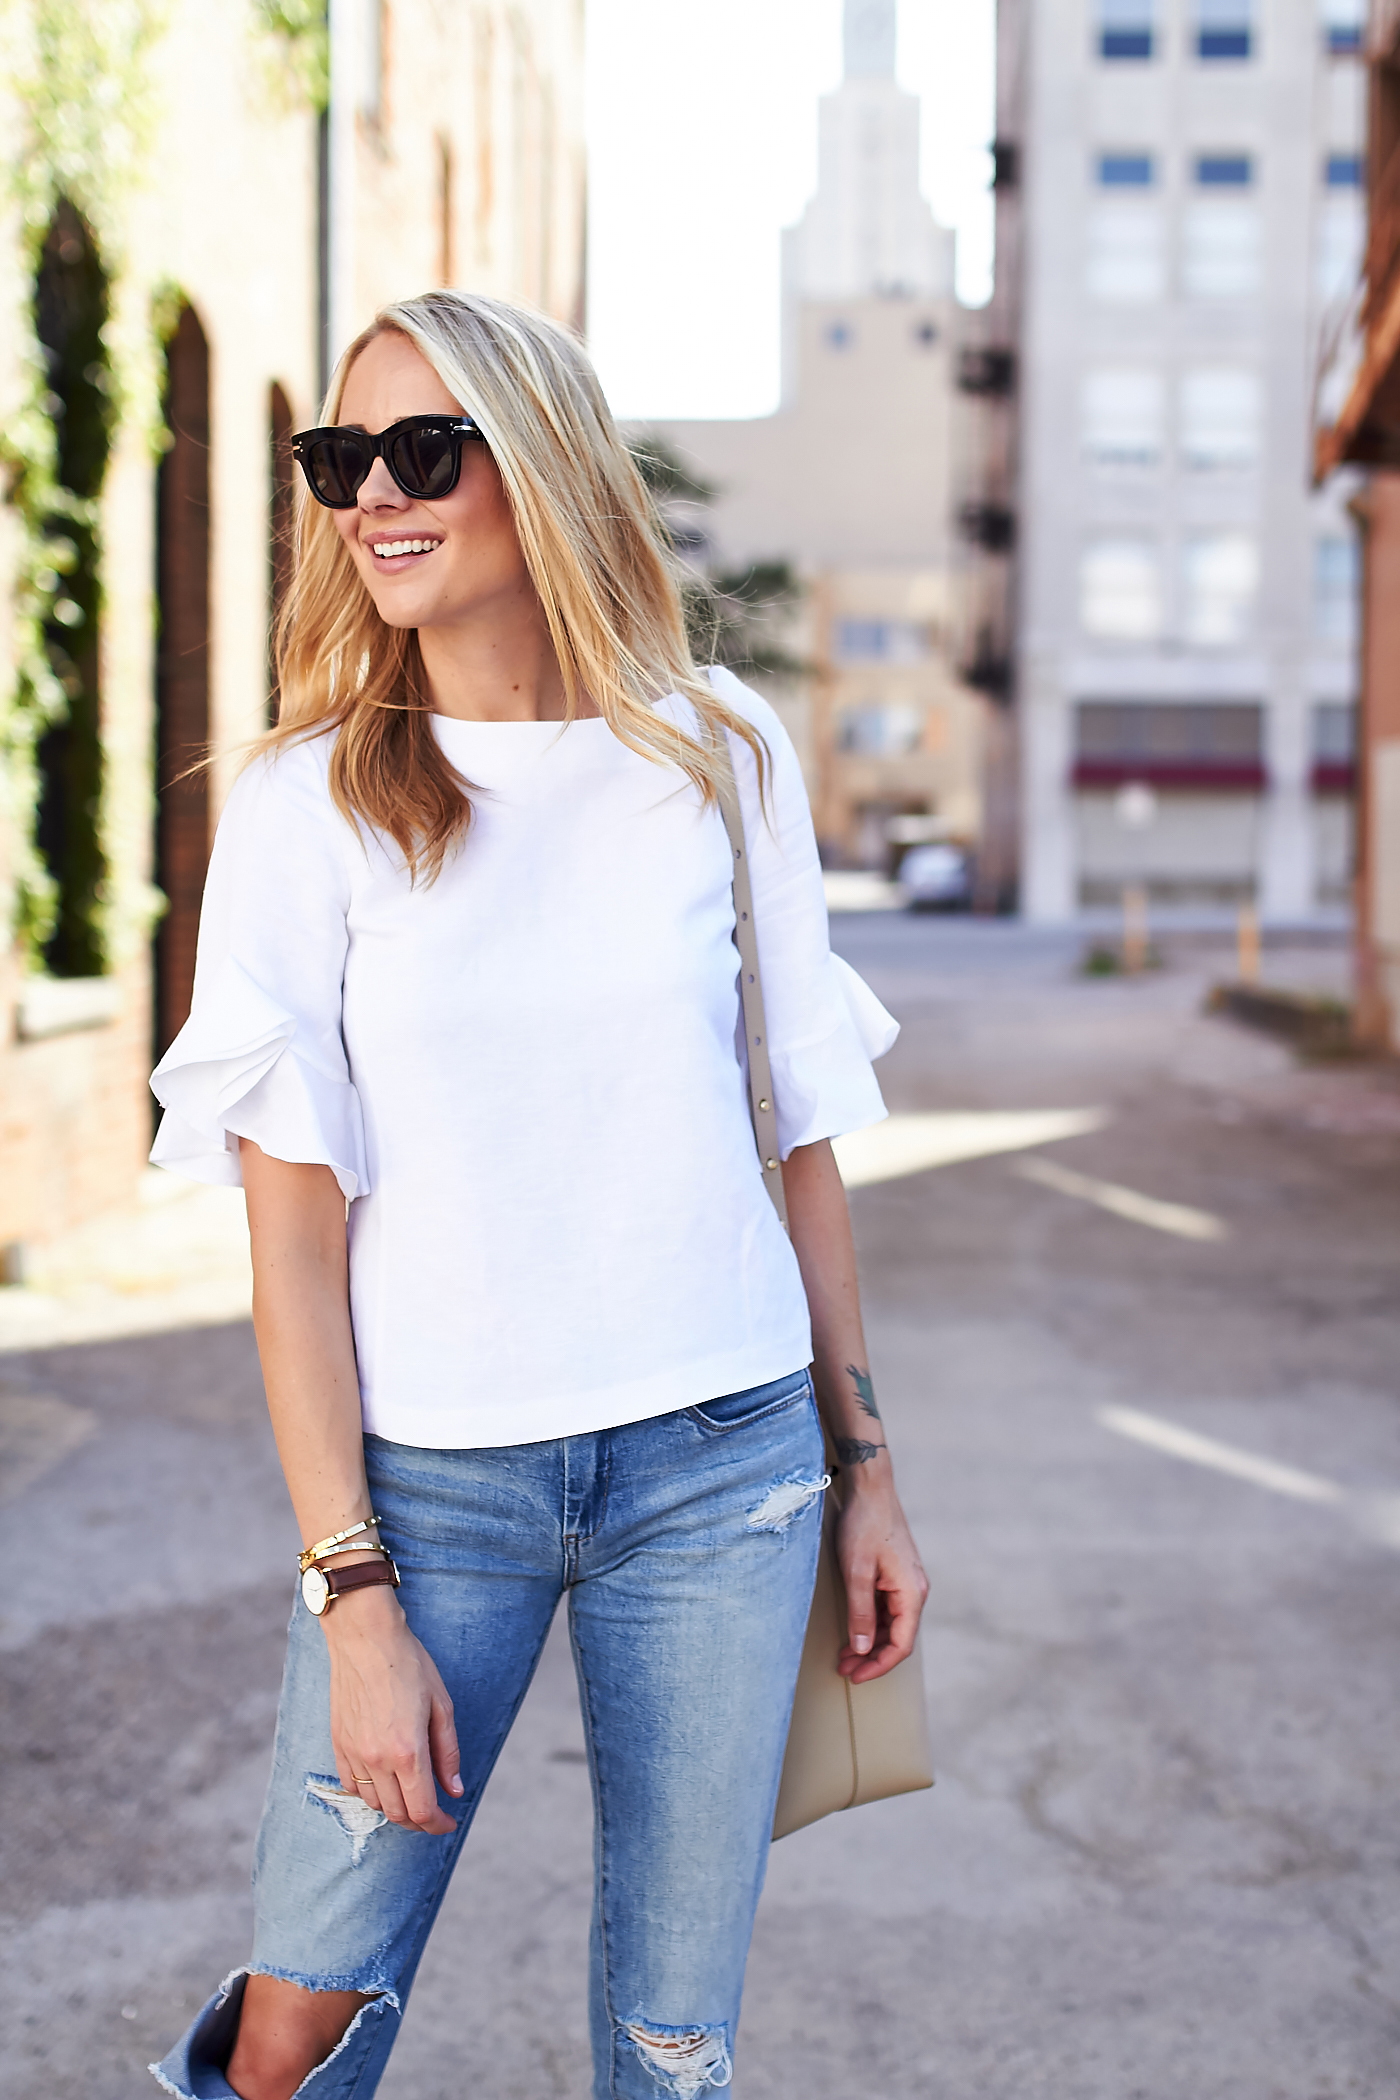 Celine Sunglasses Nordstrom  ruffle sleeve top ripped skinny jeans fashion jackson